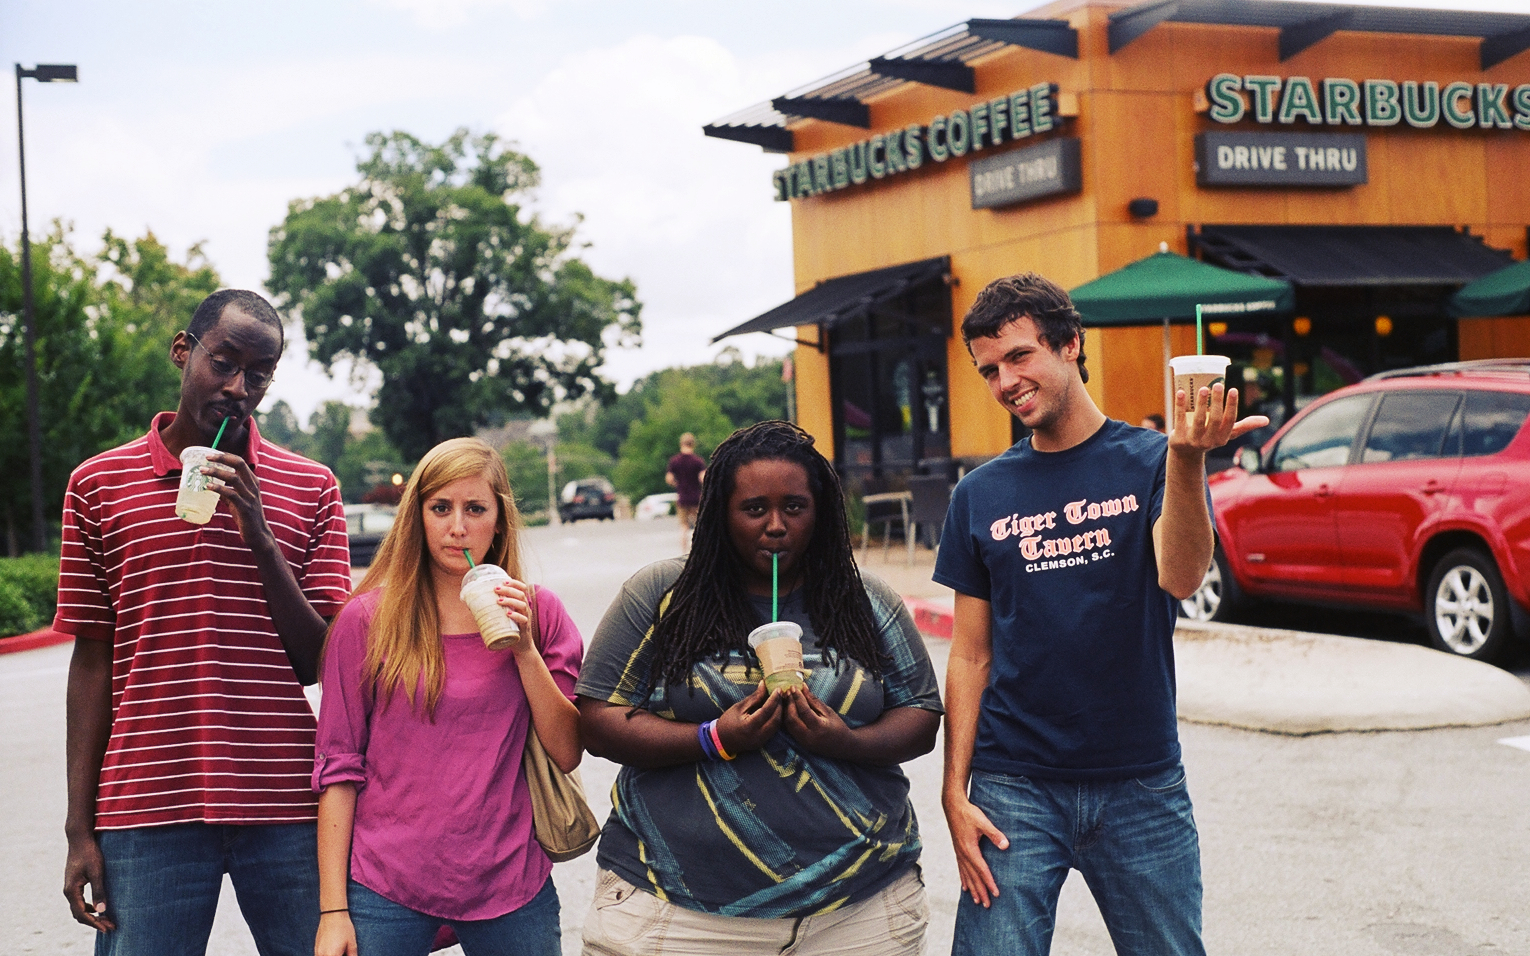 starbucks-film-05.jpg